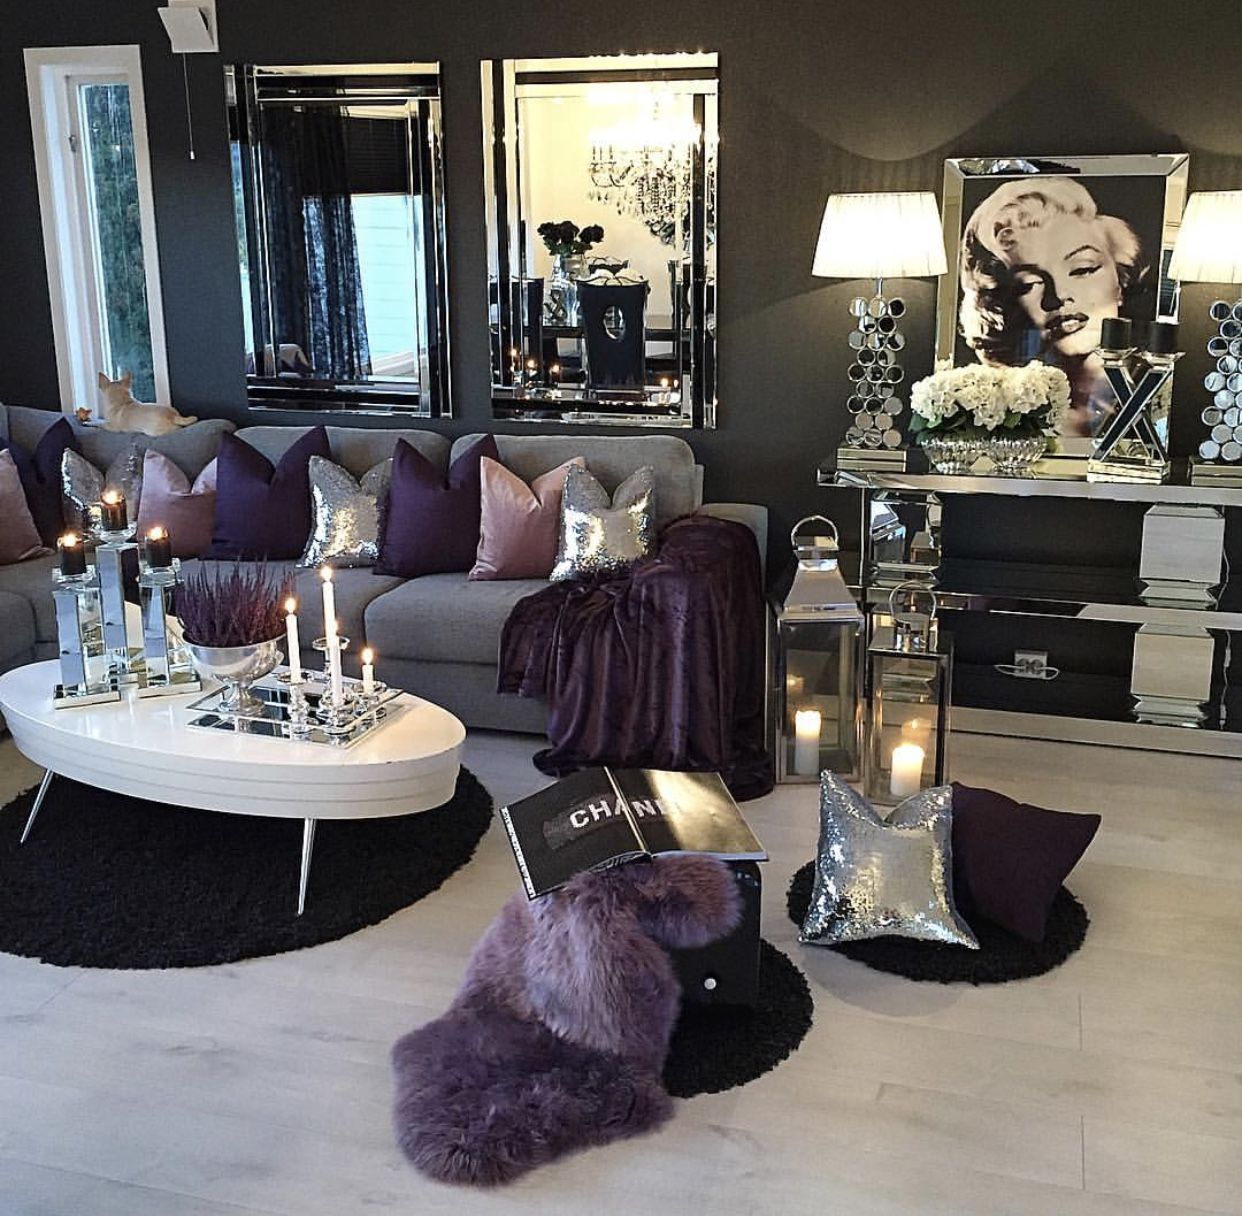 Light Wood Floors With Dark Wall Create A Bold Contrast Living Room Decor Apartment Purple Living Room Silver Living Room